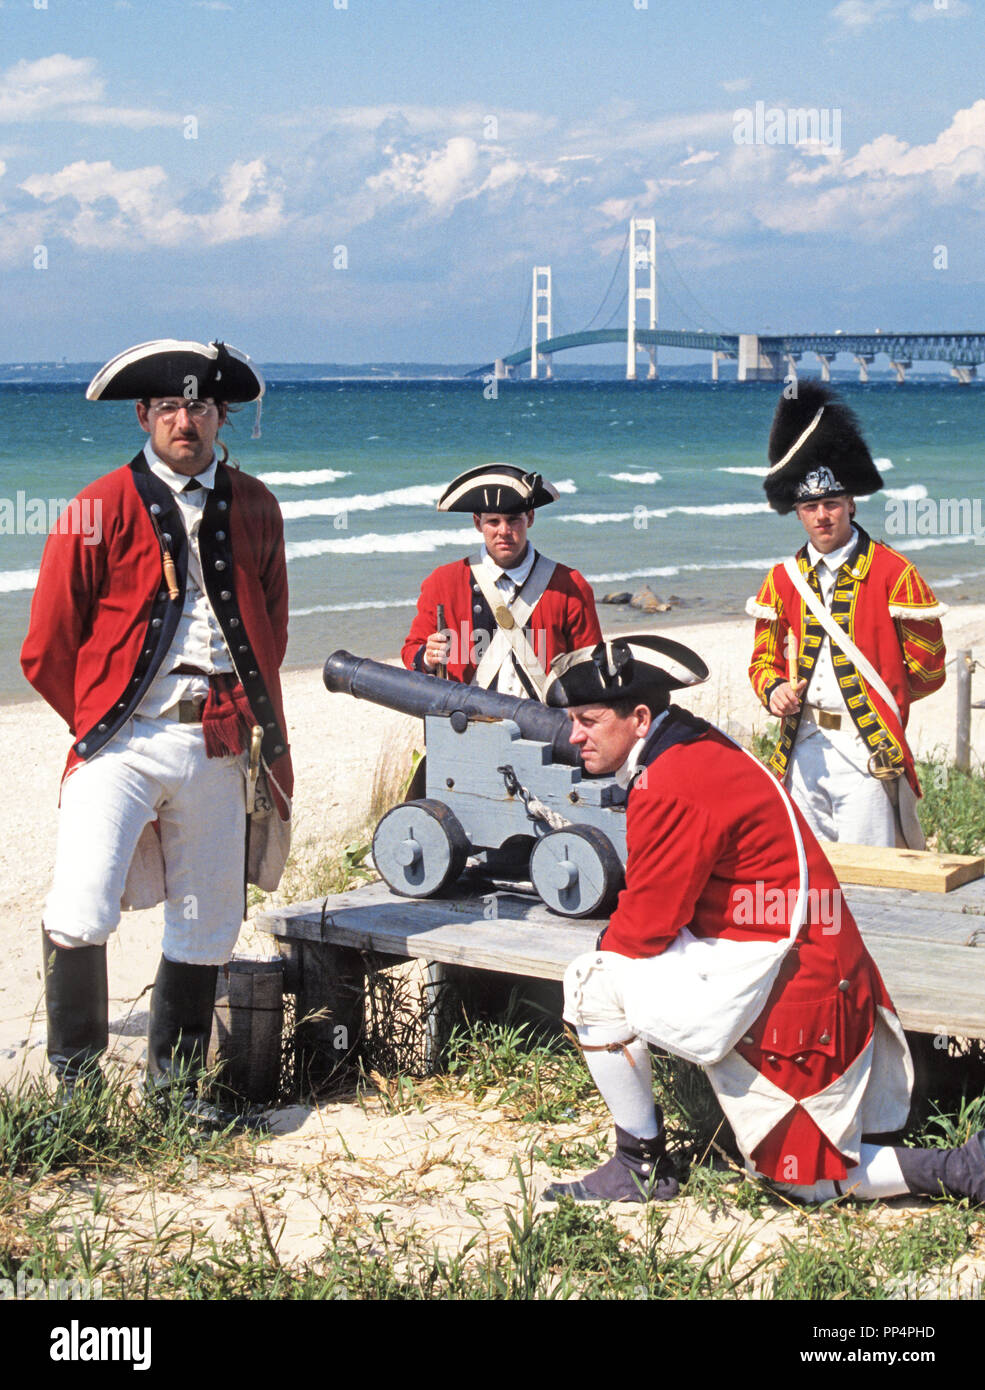 British Soldiers of King's 8th Regiment on Foot reenactment 1774-1781 occupation of Fort Michilimackinac, Michigan, with Mackinac Bridge in backgrnd. - Stock Image